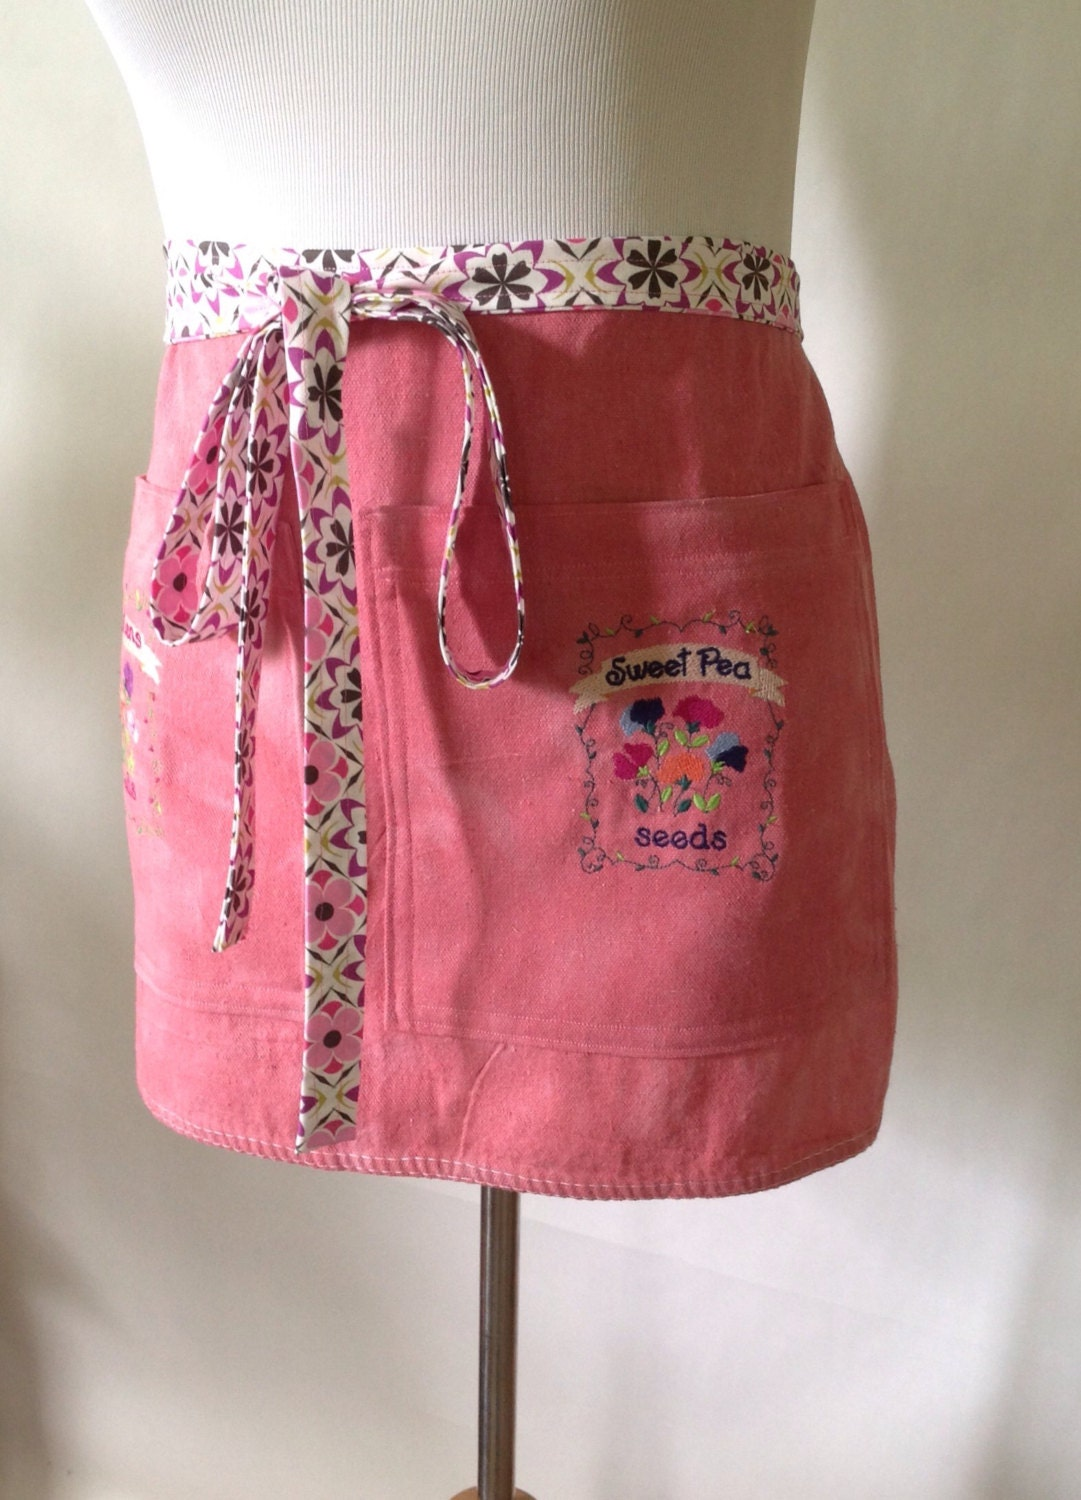 Garden Apron, Apron With Pockets, Drop Cloth, Embroidered Apron, Sweet Pea,  Impatiens, Utility Apron, Pink Apron